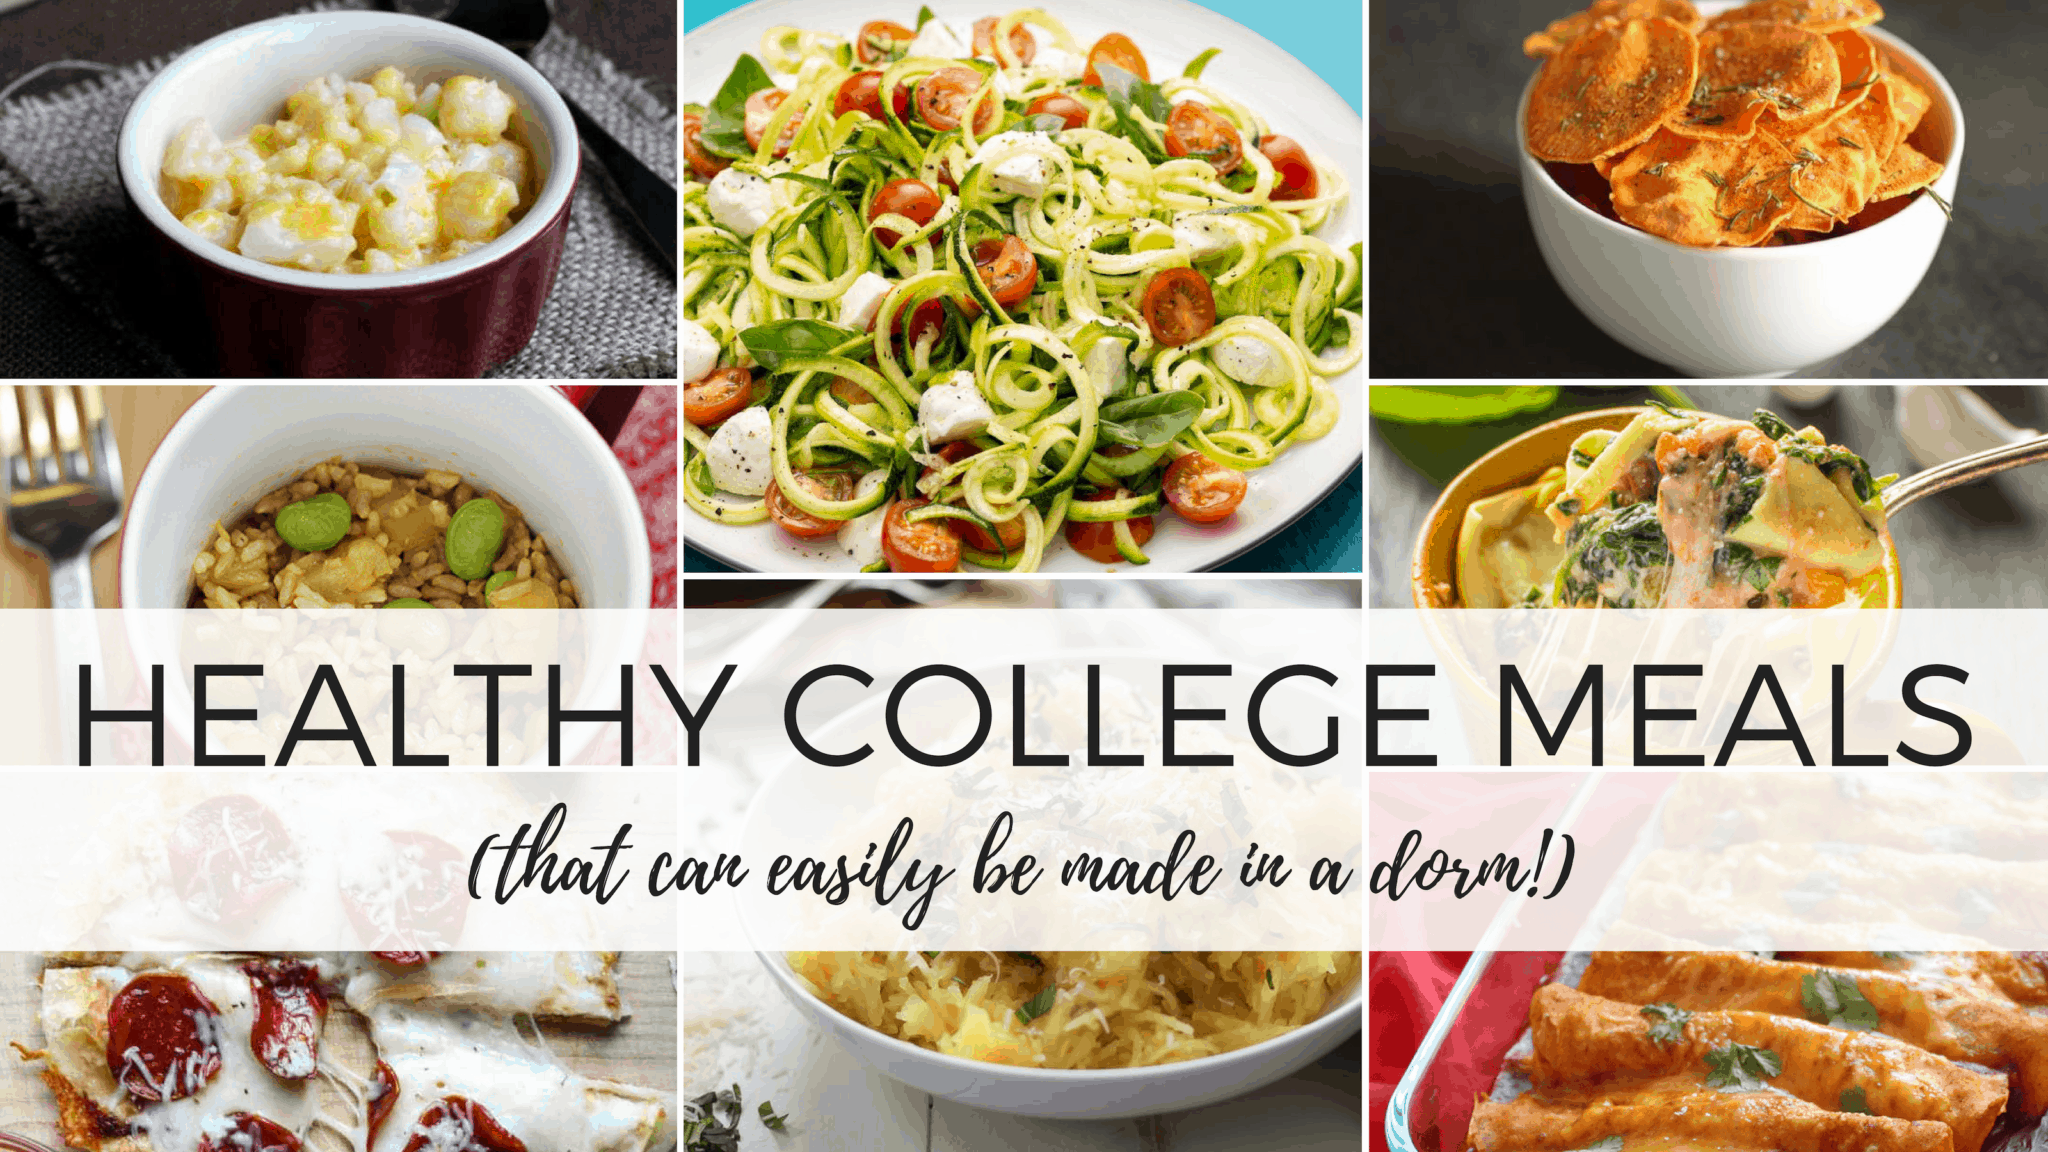 25 Insanely Healthy College Meals You Can Make In A Dorm By Sophia Lee